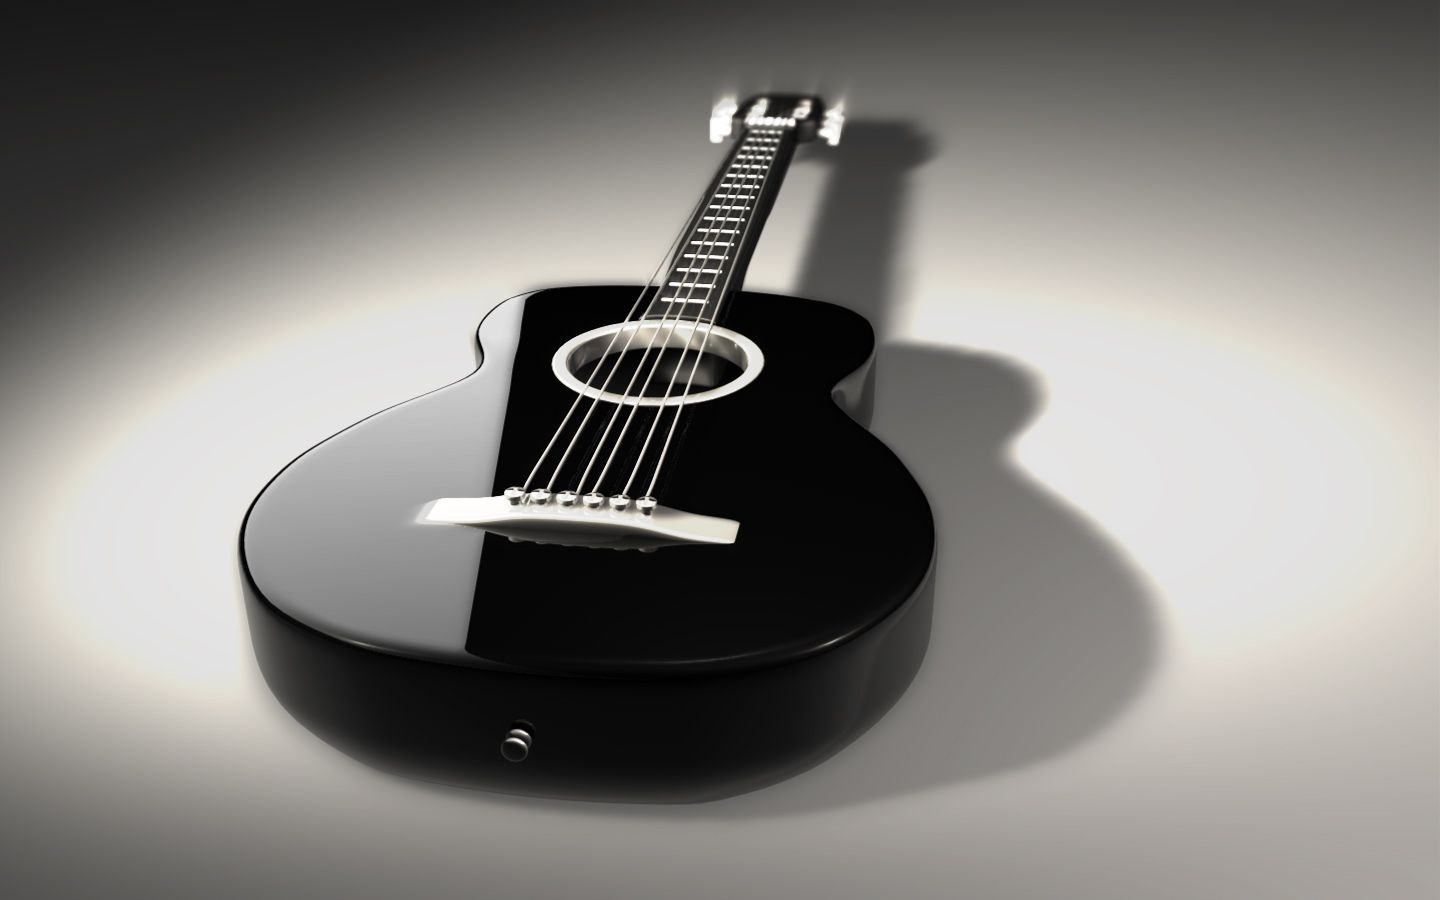 Blue And Black Acoustic Guitar 9 Free Hd Wallpaper